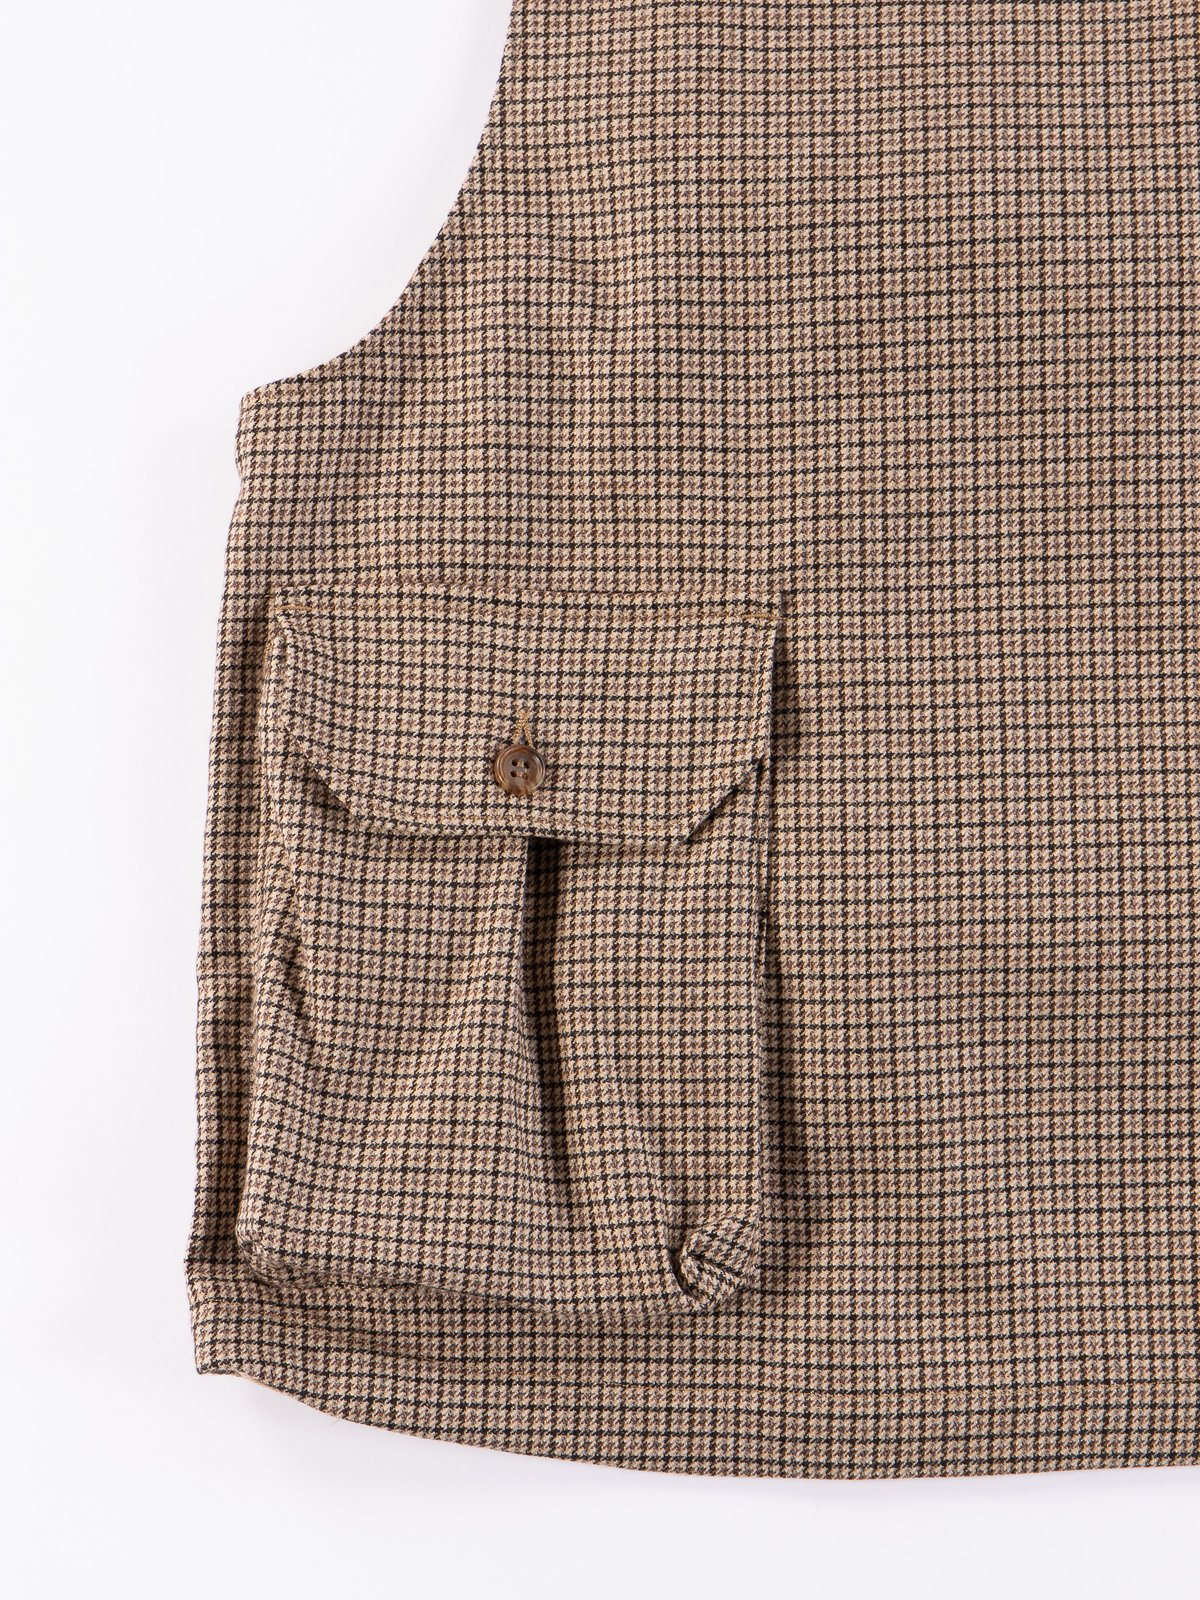 Brown Wool Poly Gunclub Check Cover Vest - Image 5